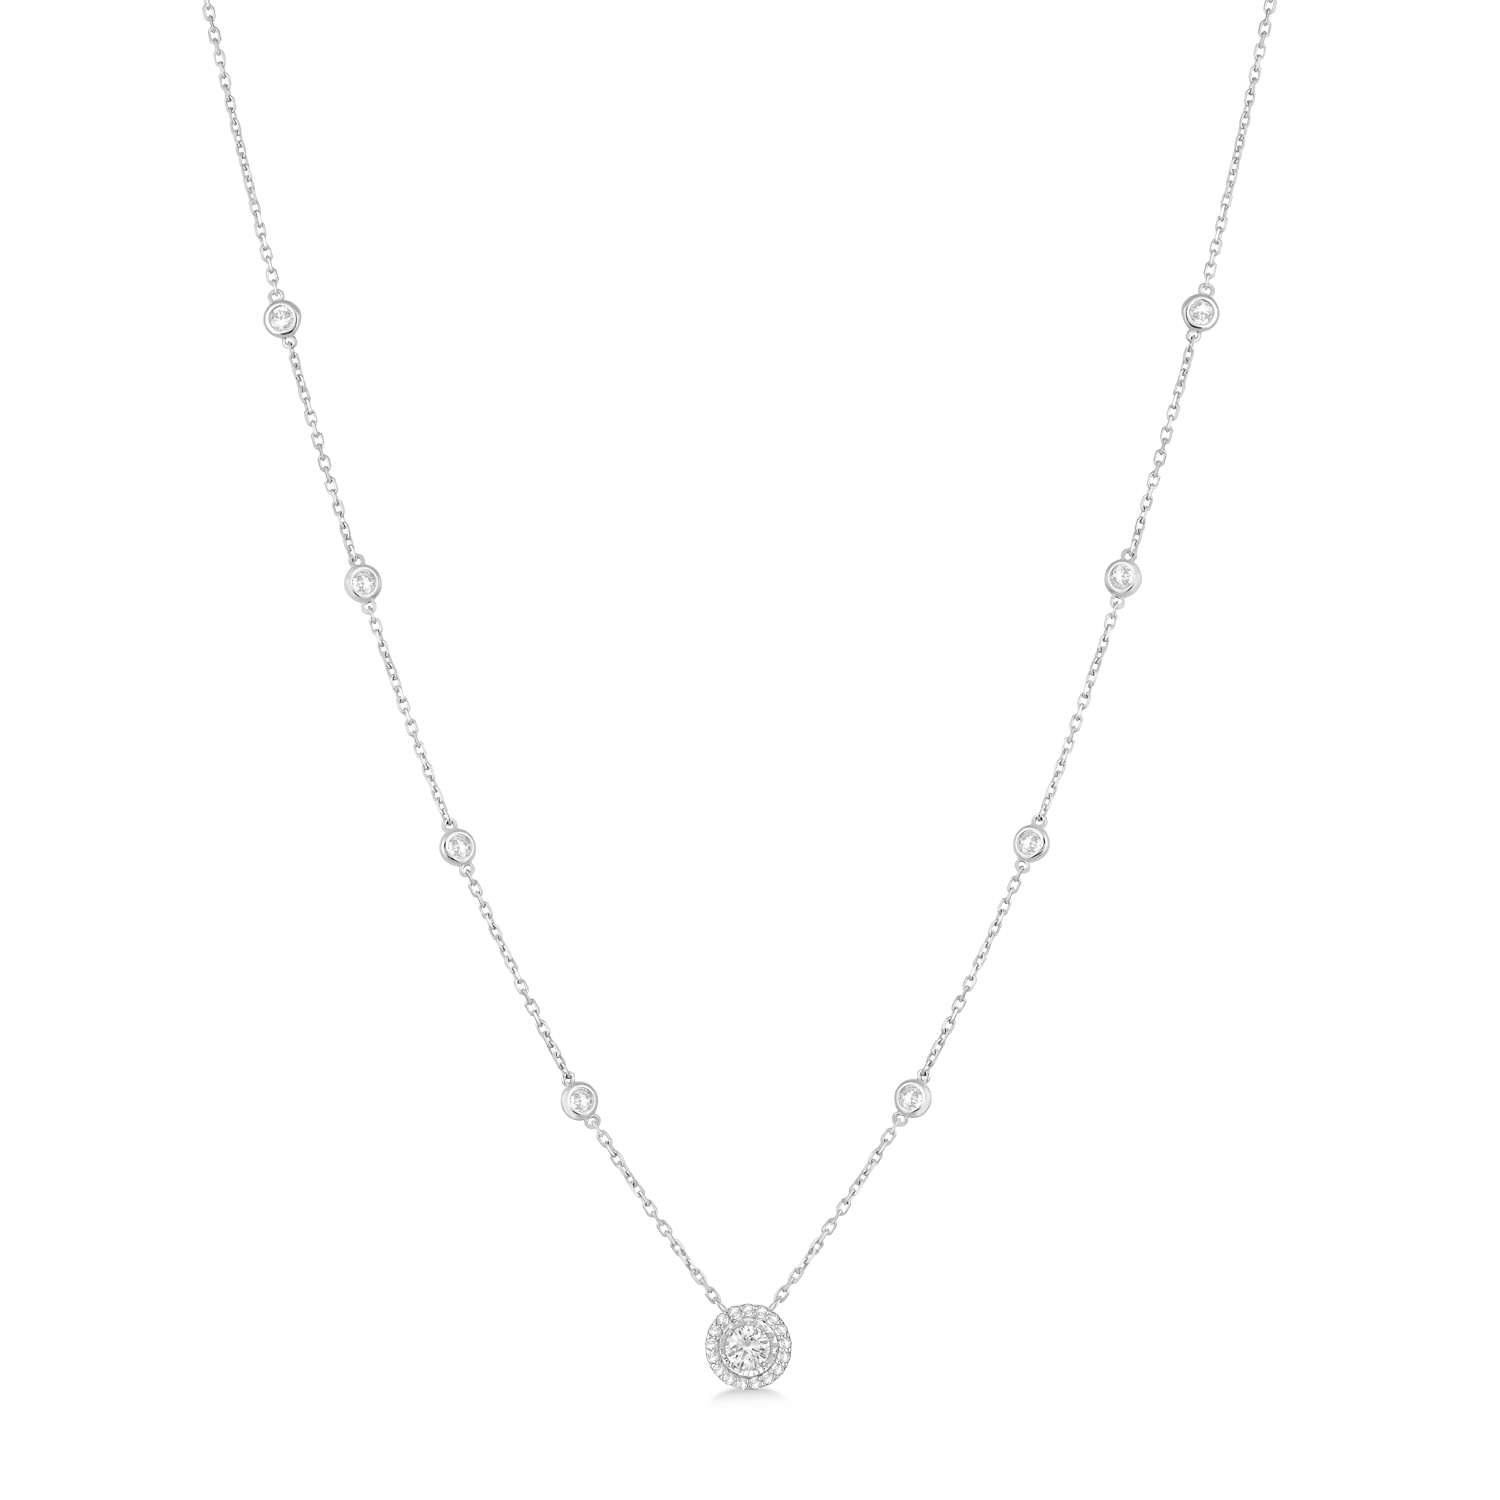 Diamond Halo Pendant Station Necklace in 14k White Gold (1.50 ctw)